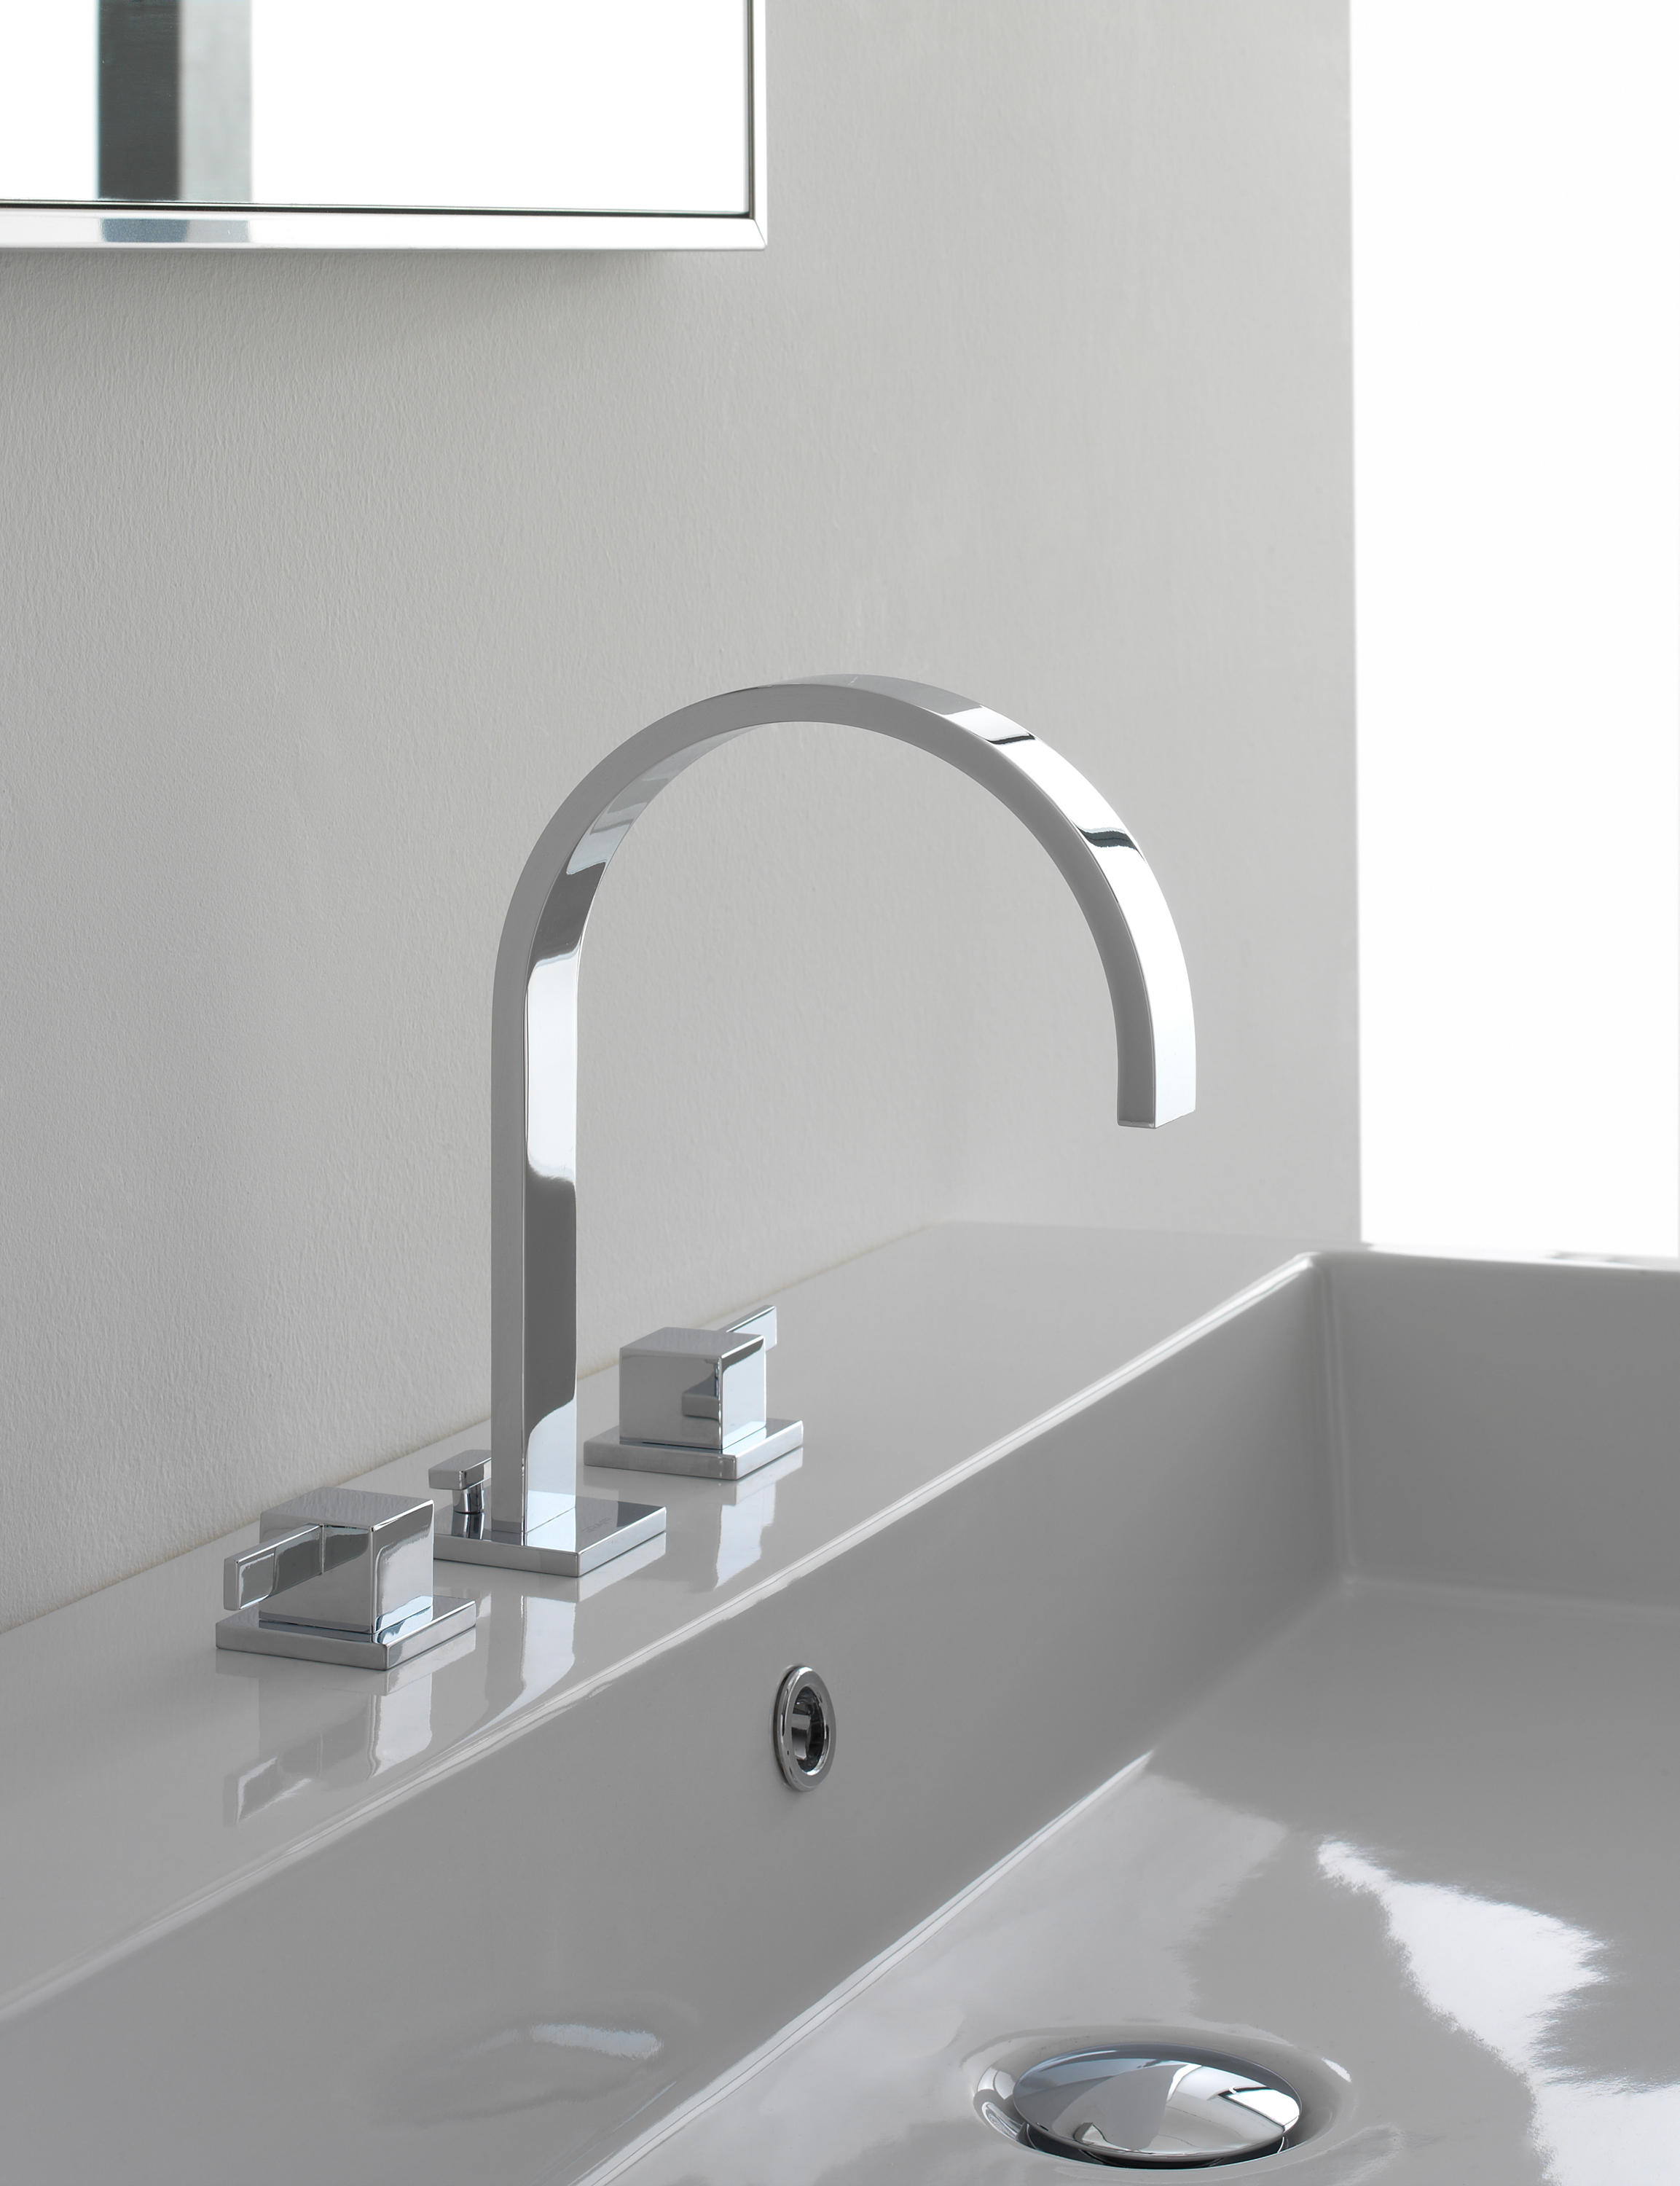 faucets anything bathroom before pin like modern graff definitely this sink i seen ve ultra never faucet